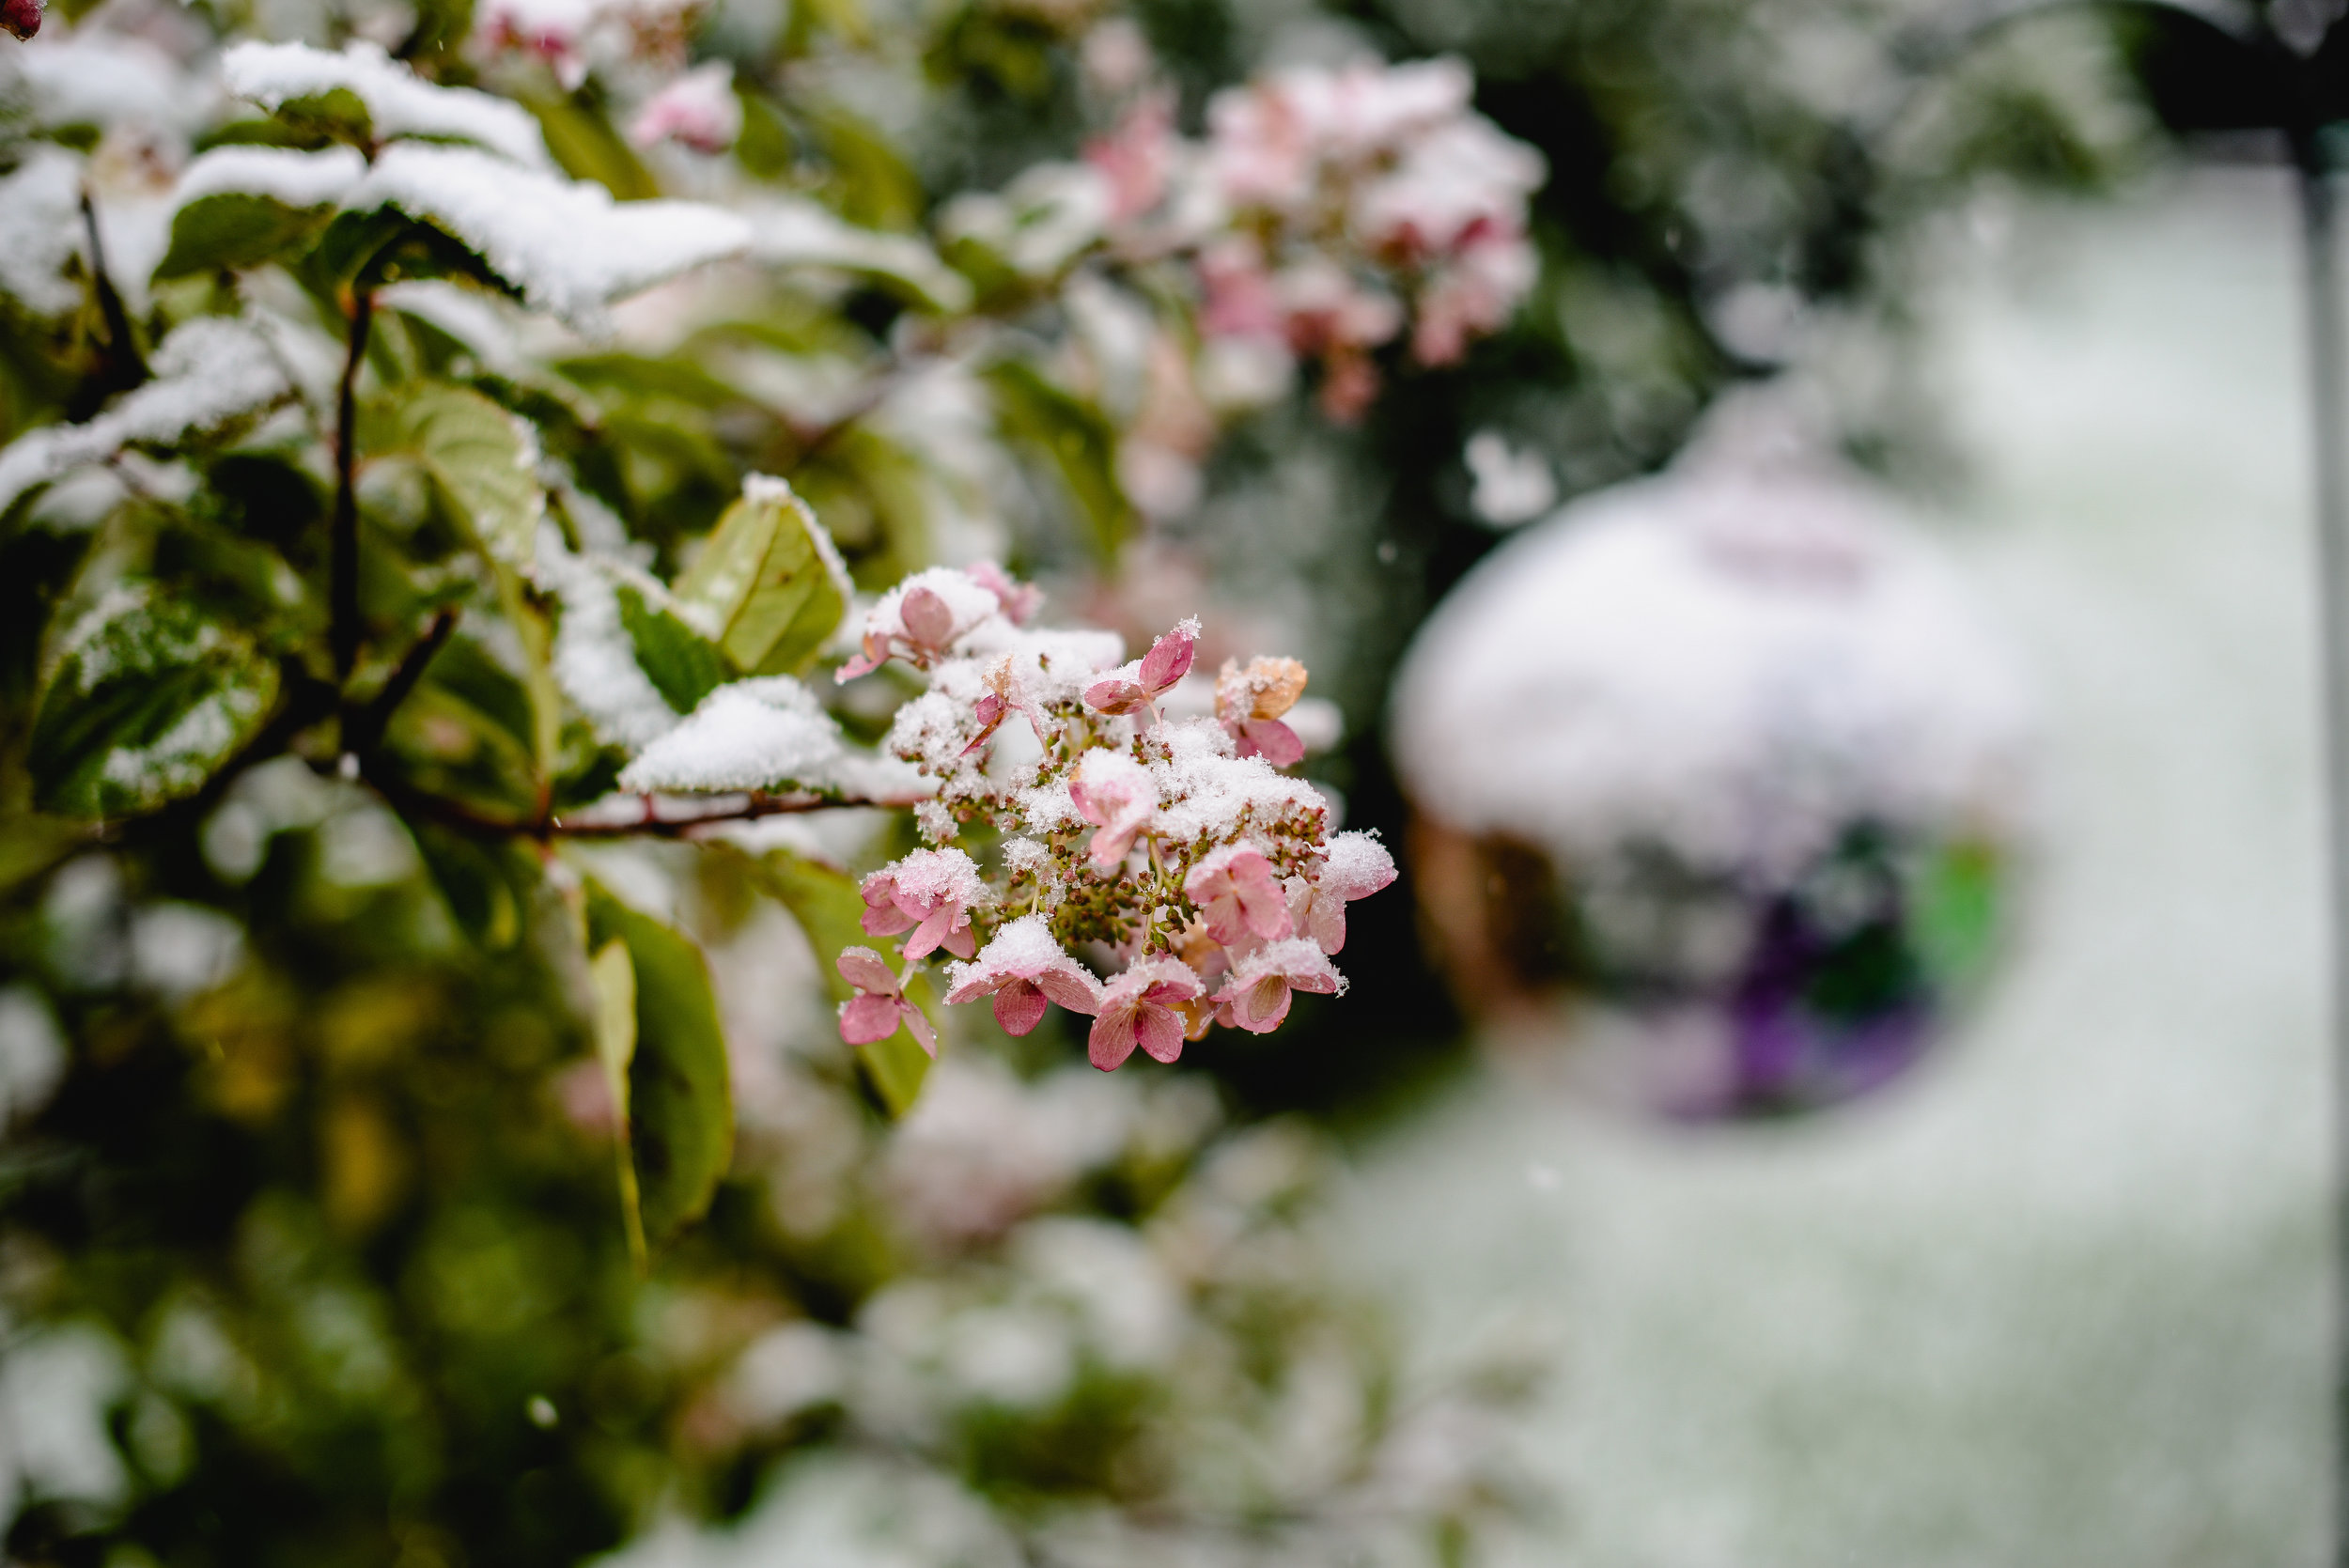 snow and hydrangeas in September